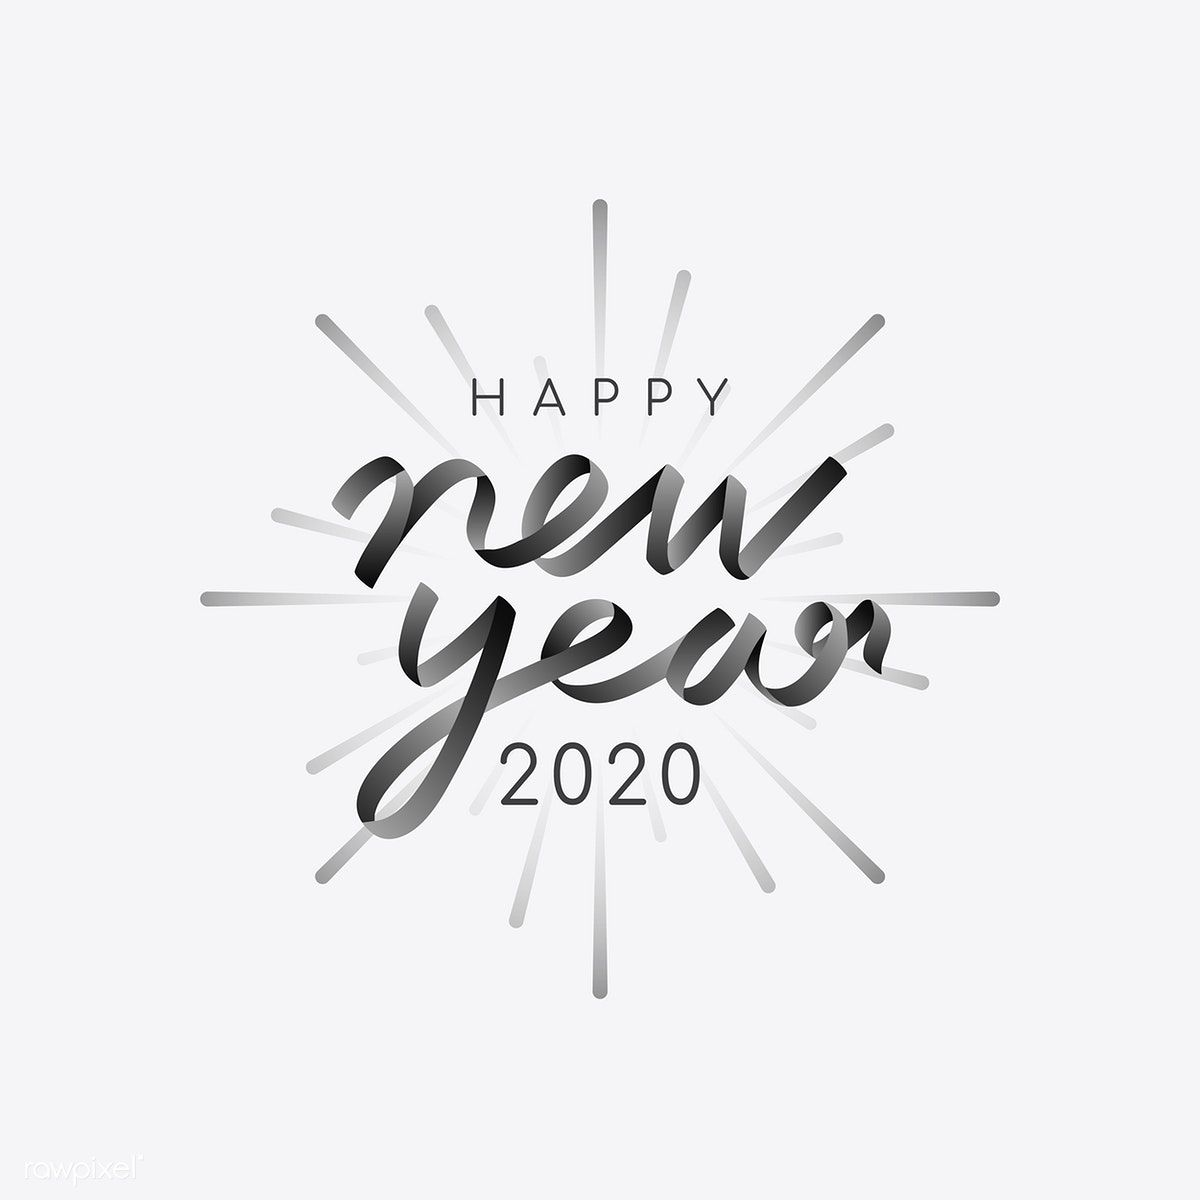 Download Premium Vector Of Happy New Year 2020 Vector 1234485 Happy New Year 2020 Typography 2020 Typography Happy New Year Images